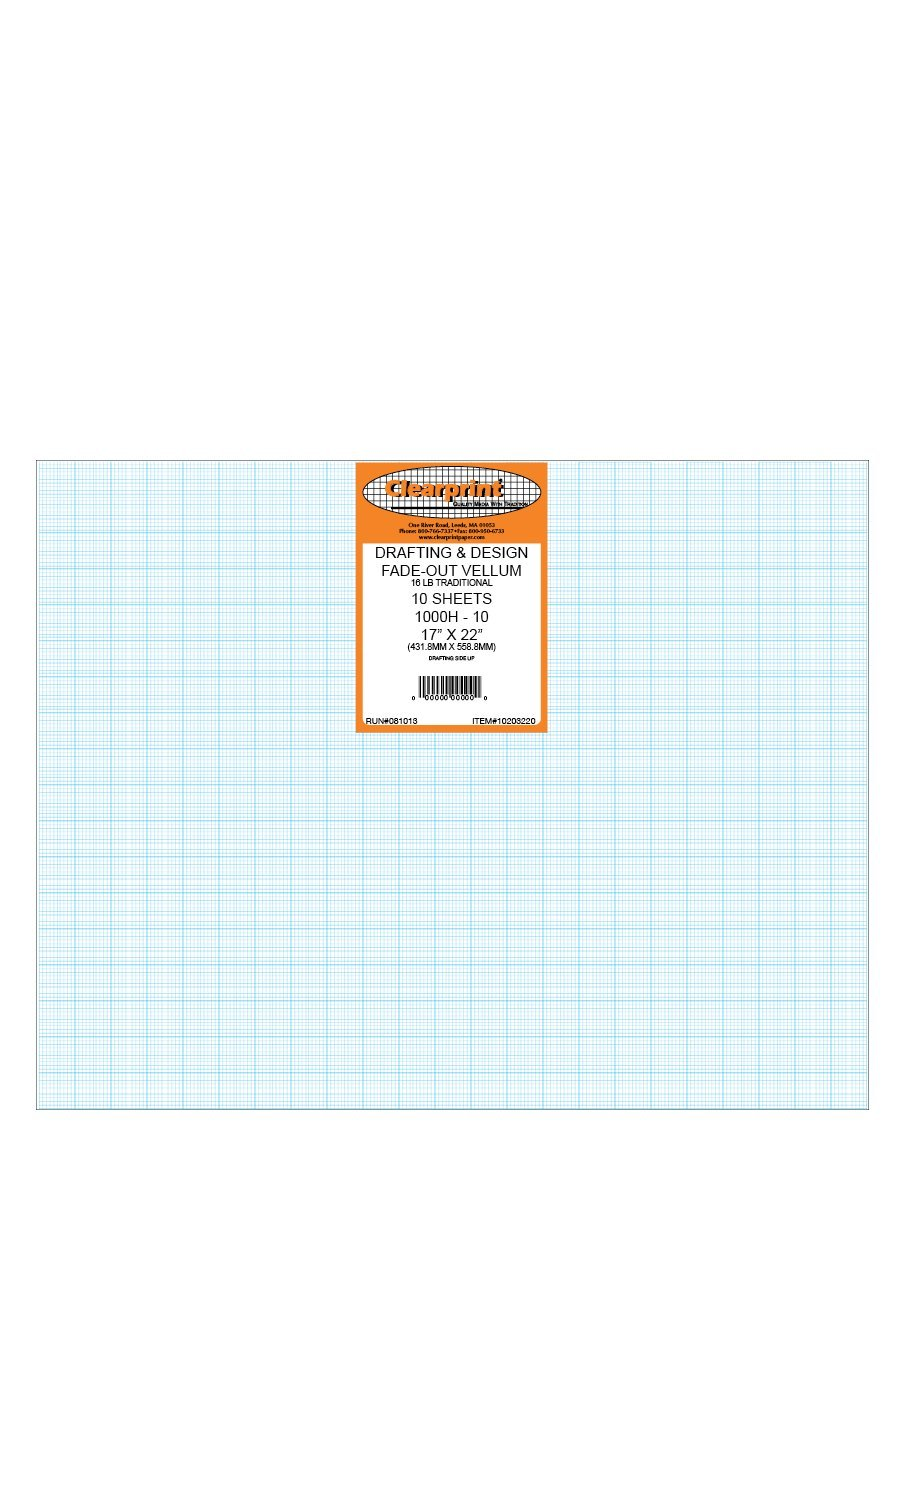 Clearprint 1000H Design Vellum Sheets with Printed Fade-Out 10x10 Grid, 16 Lb., 100% Cotton, 17 x 22 Inches, 10 Sheets Per Pack, 1 Each (10203220) by Clearprint